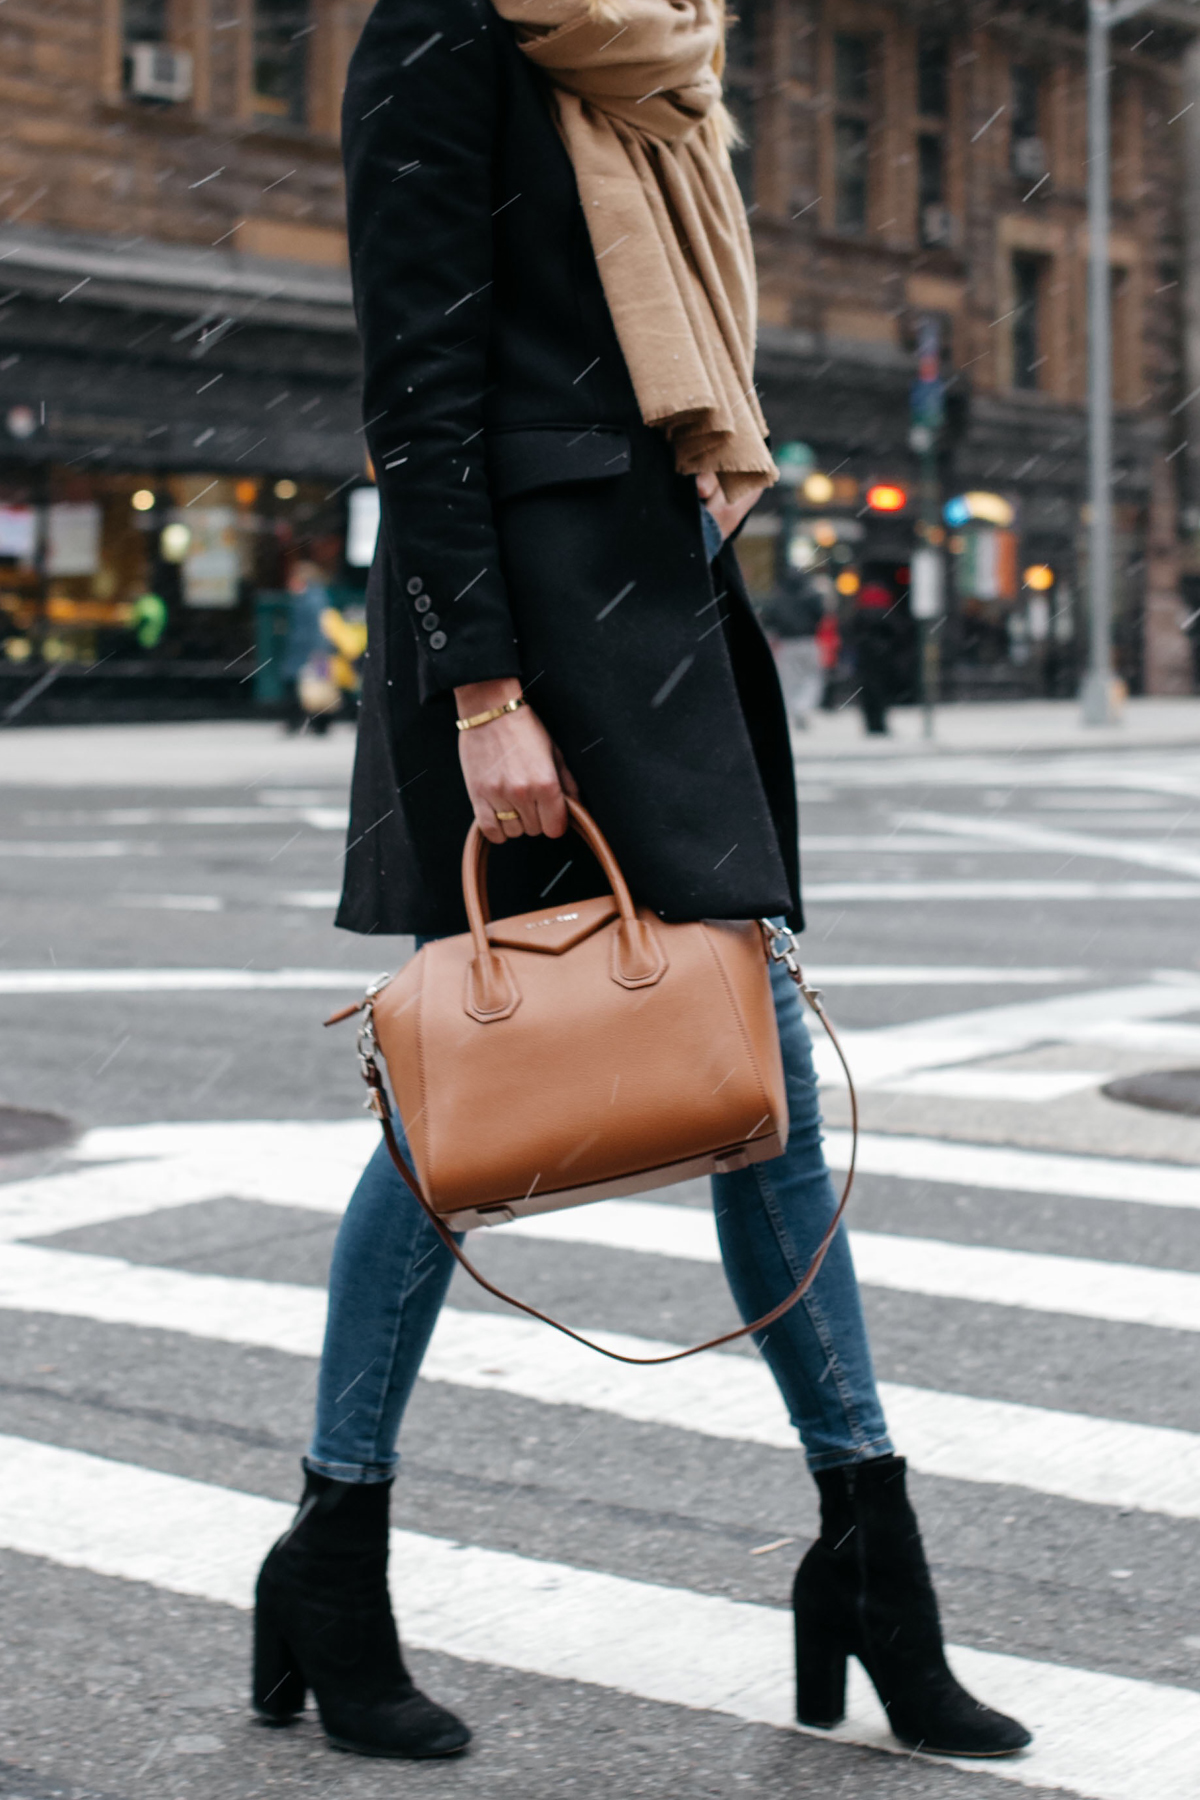 Tan Scarf Black Wool Coat Denim Skinny Jeans Black Booties Givenchy Antigona Satchel Cognac Fashion Jackson Dallas Blogger Fashion Blogger Street Style NYC